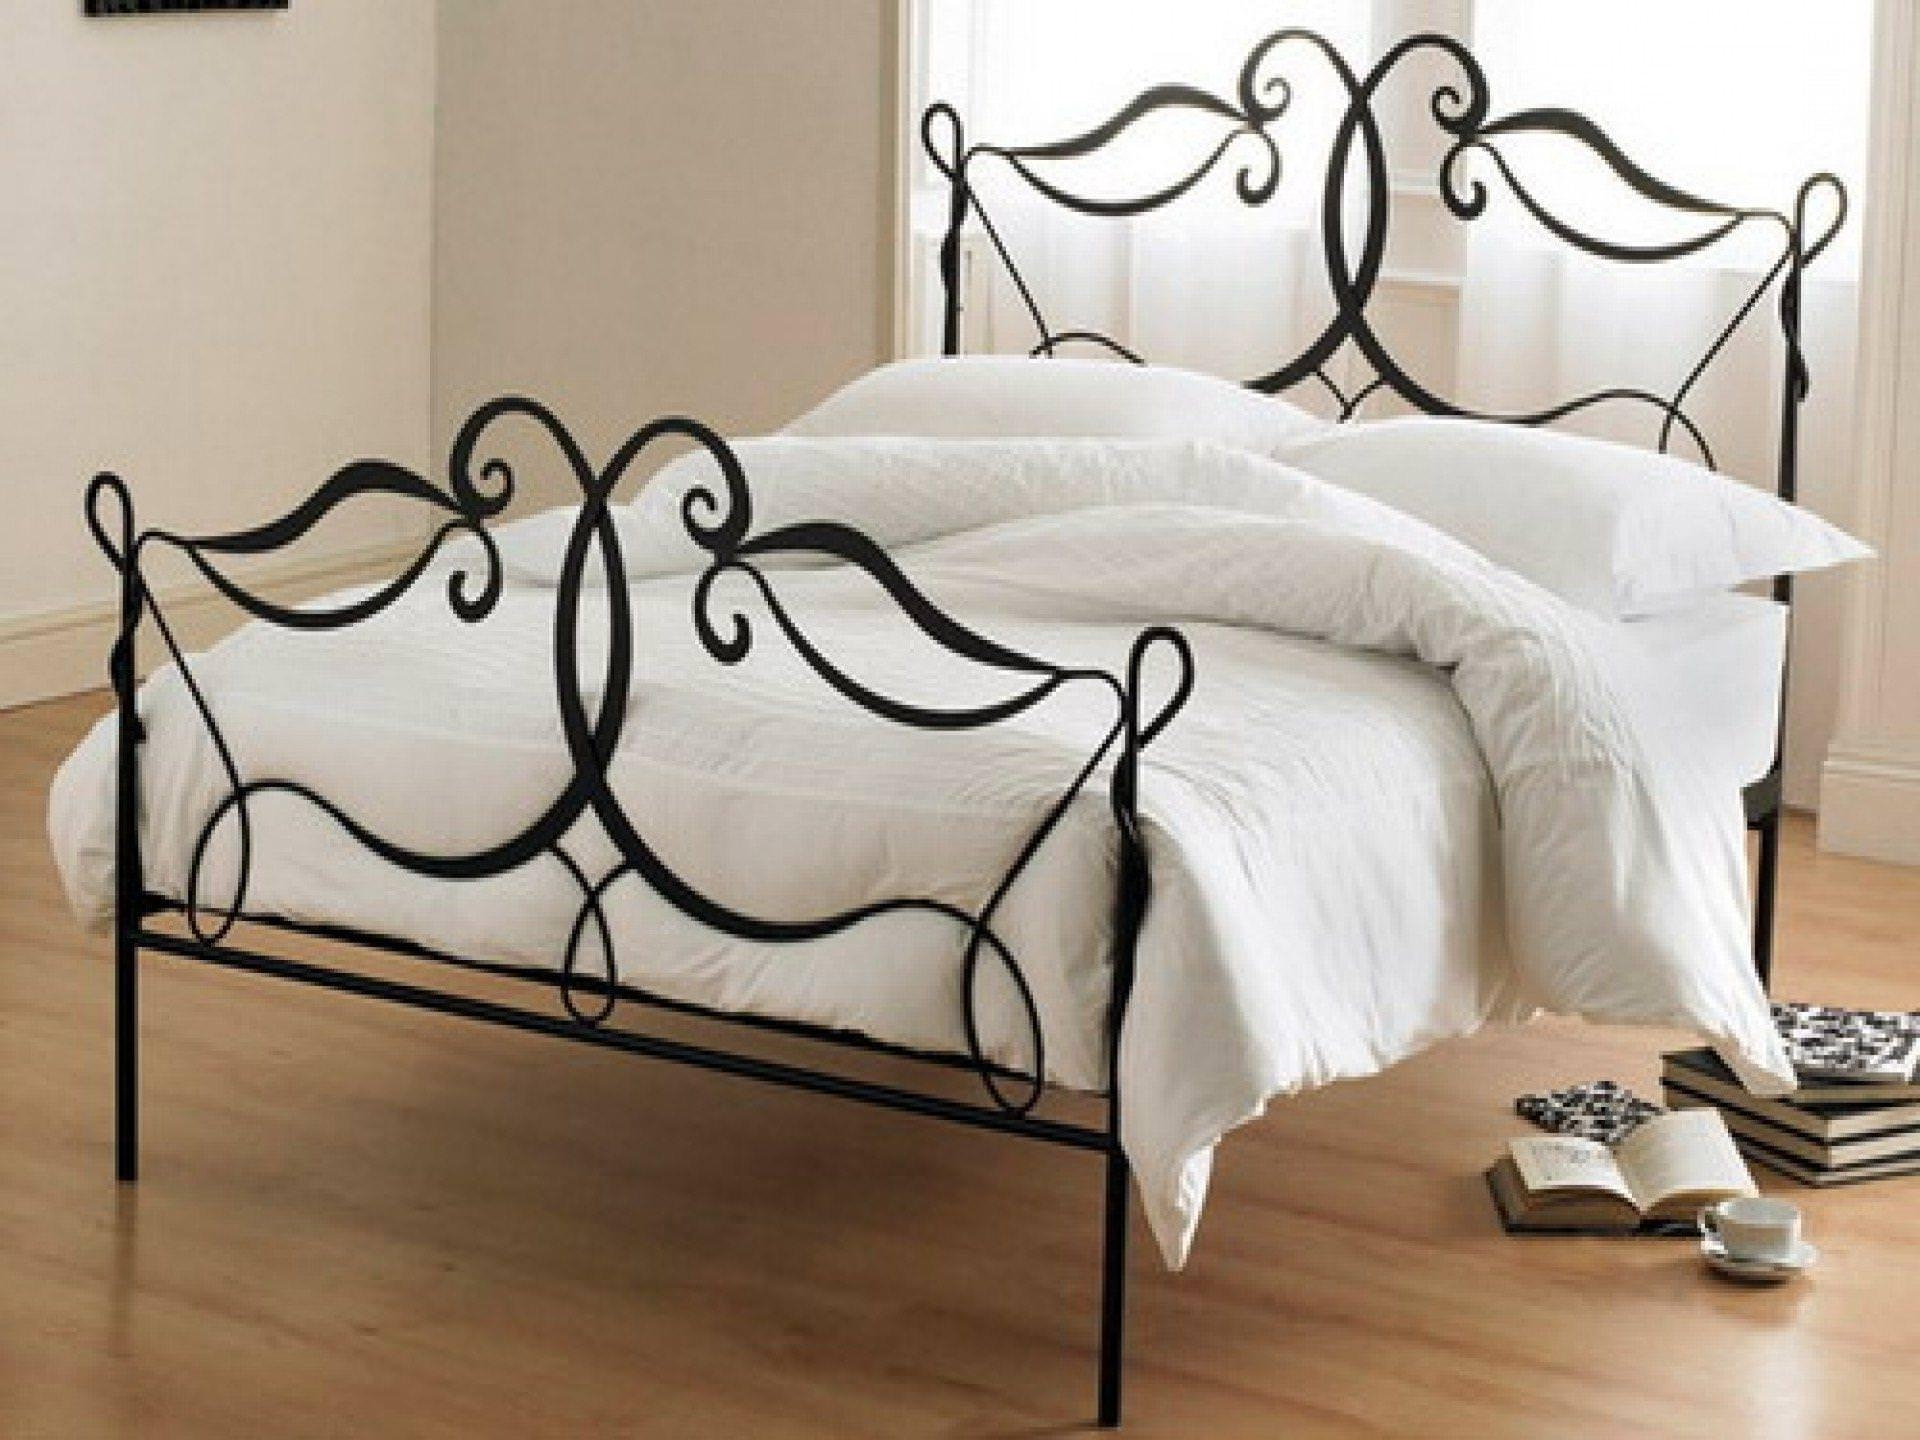 Bedroom : Chrome Wall Art Metal Art Wall Hangings Round Wall Art Intended For White Metal Butterfly Wall Art (Image 3 of 20)